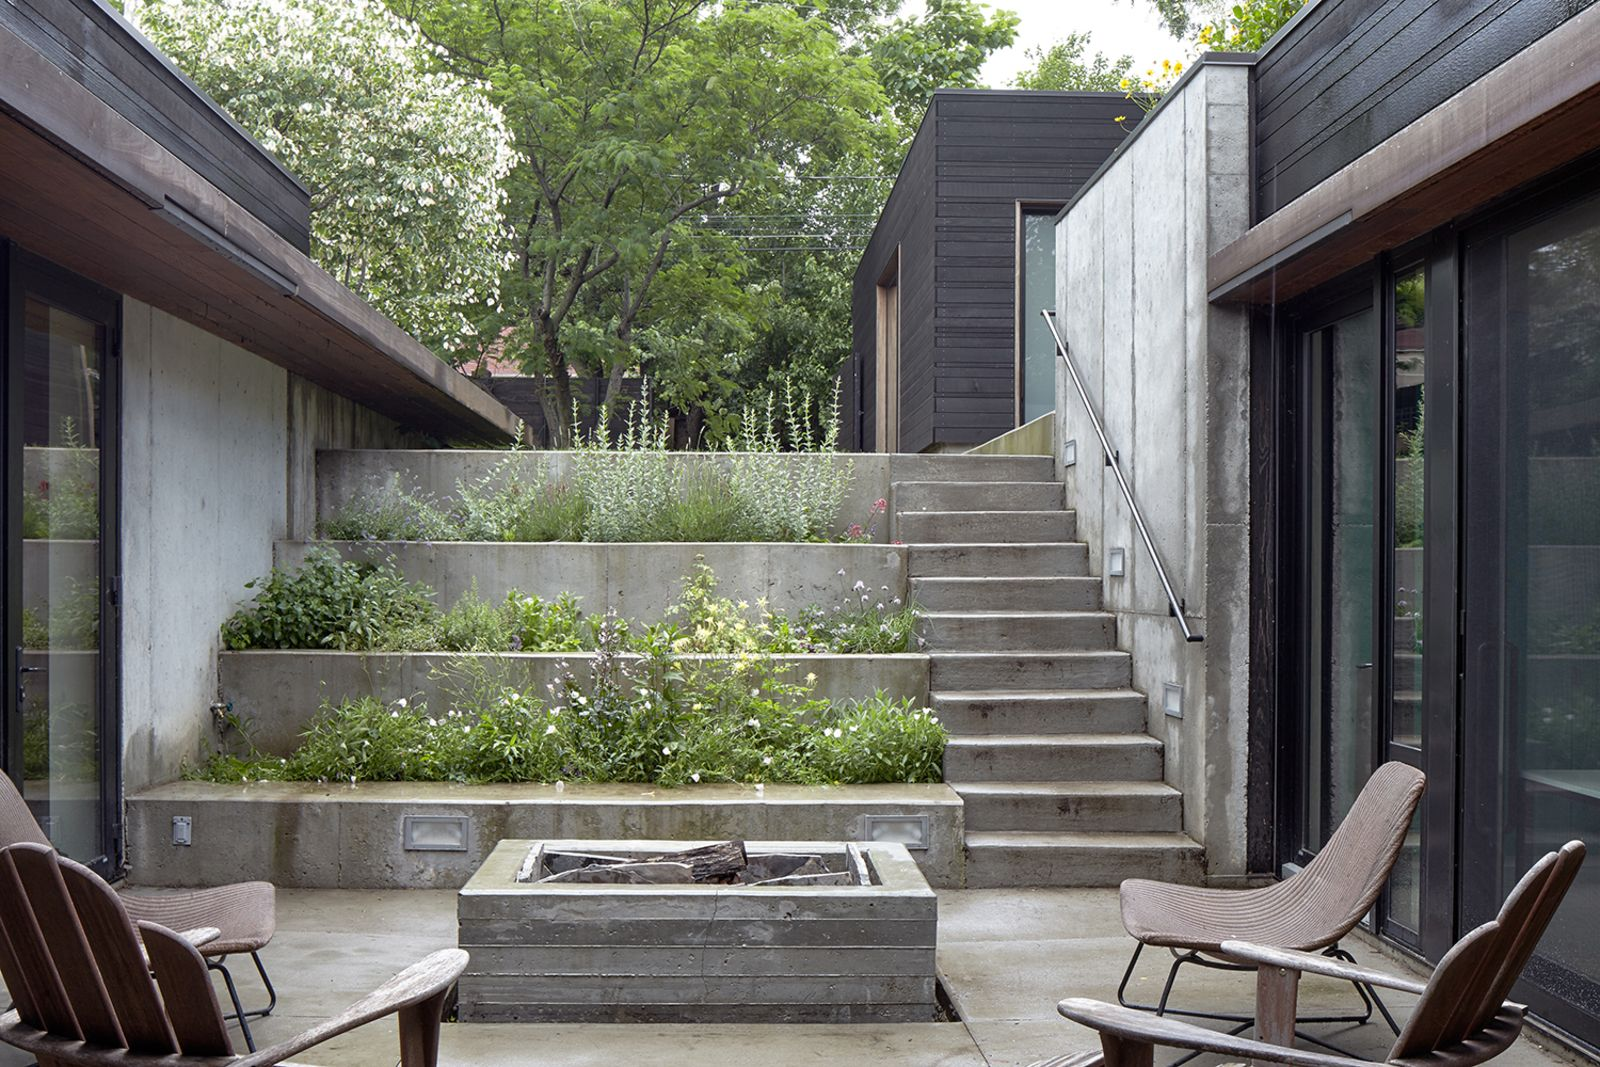 A Stepped Concrete Garden Planted With Herbs And Flowers Marks The Descent  To The House. The Courtyard Is The Focal Point Of The U Shaped Structure;  ...